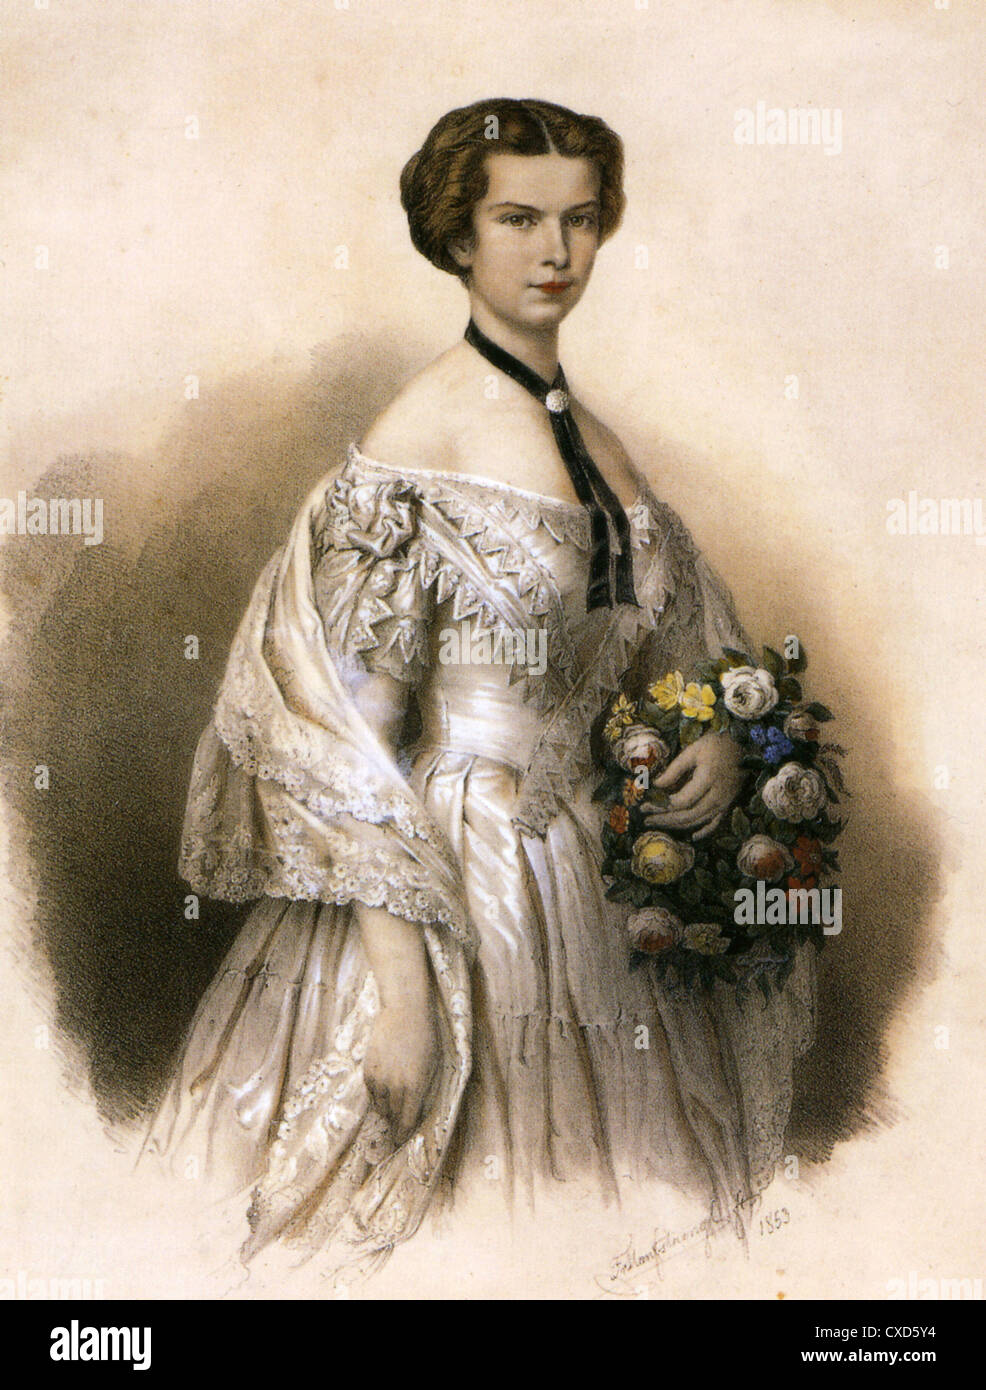 EMPRESS ELISABETH OF AUSTRIA (1837-1898) also Queen of Hungary - Stock Image